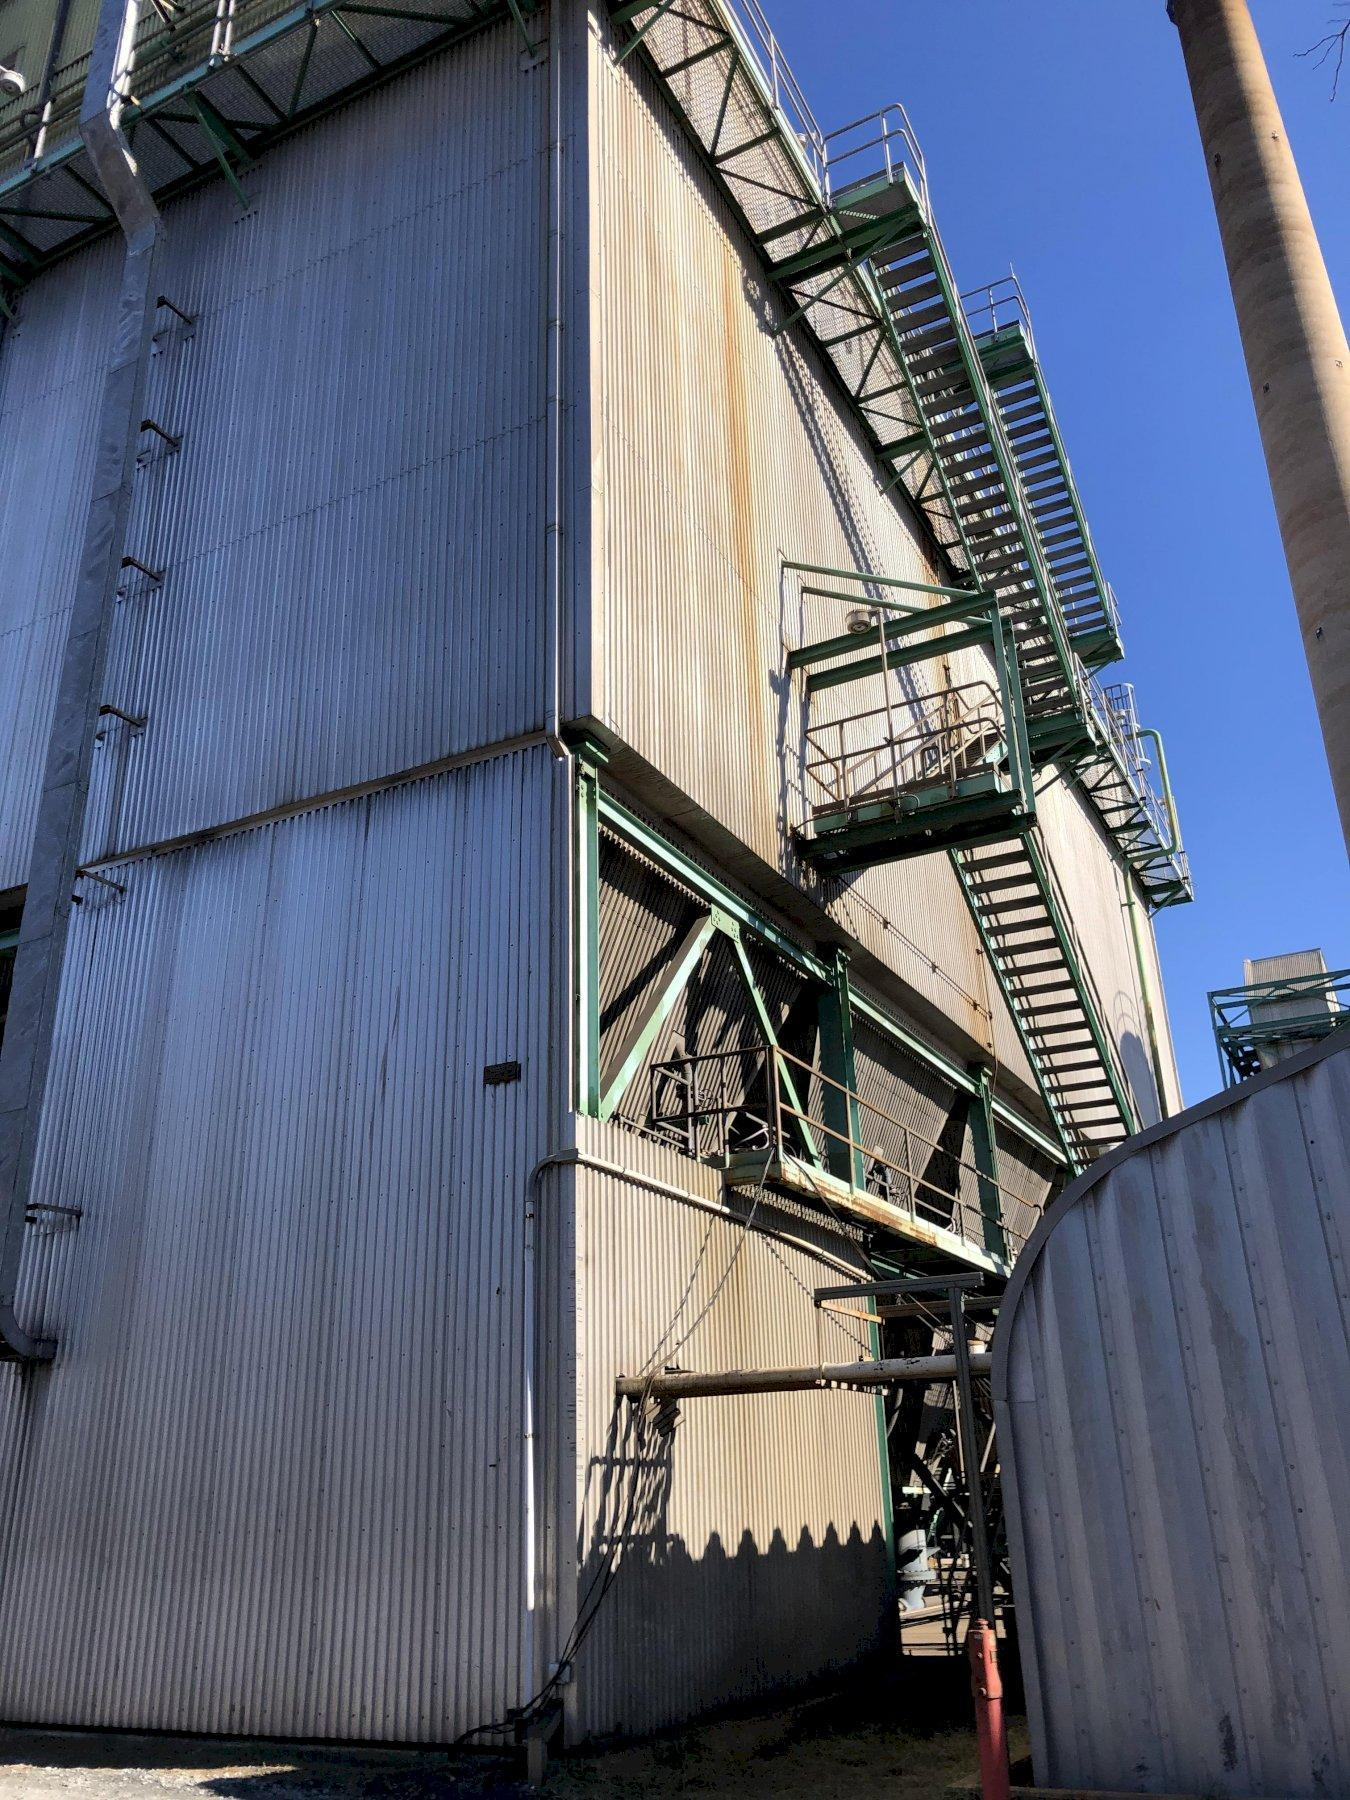 """2001 Hamon Research-Cottrell 10 compartment low pressure/high air pulse fabric filter dust collector project # 10639-100, rated at 1,009,200 acfm, 300 degree inlet, each compartment with 824 oblong 21/2"""" x 6"""" x 26'10"""" bags, transporter and controls, mmc panel with disconnects (note: blower and other items tagged individually)"""